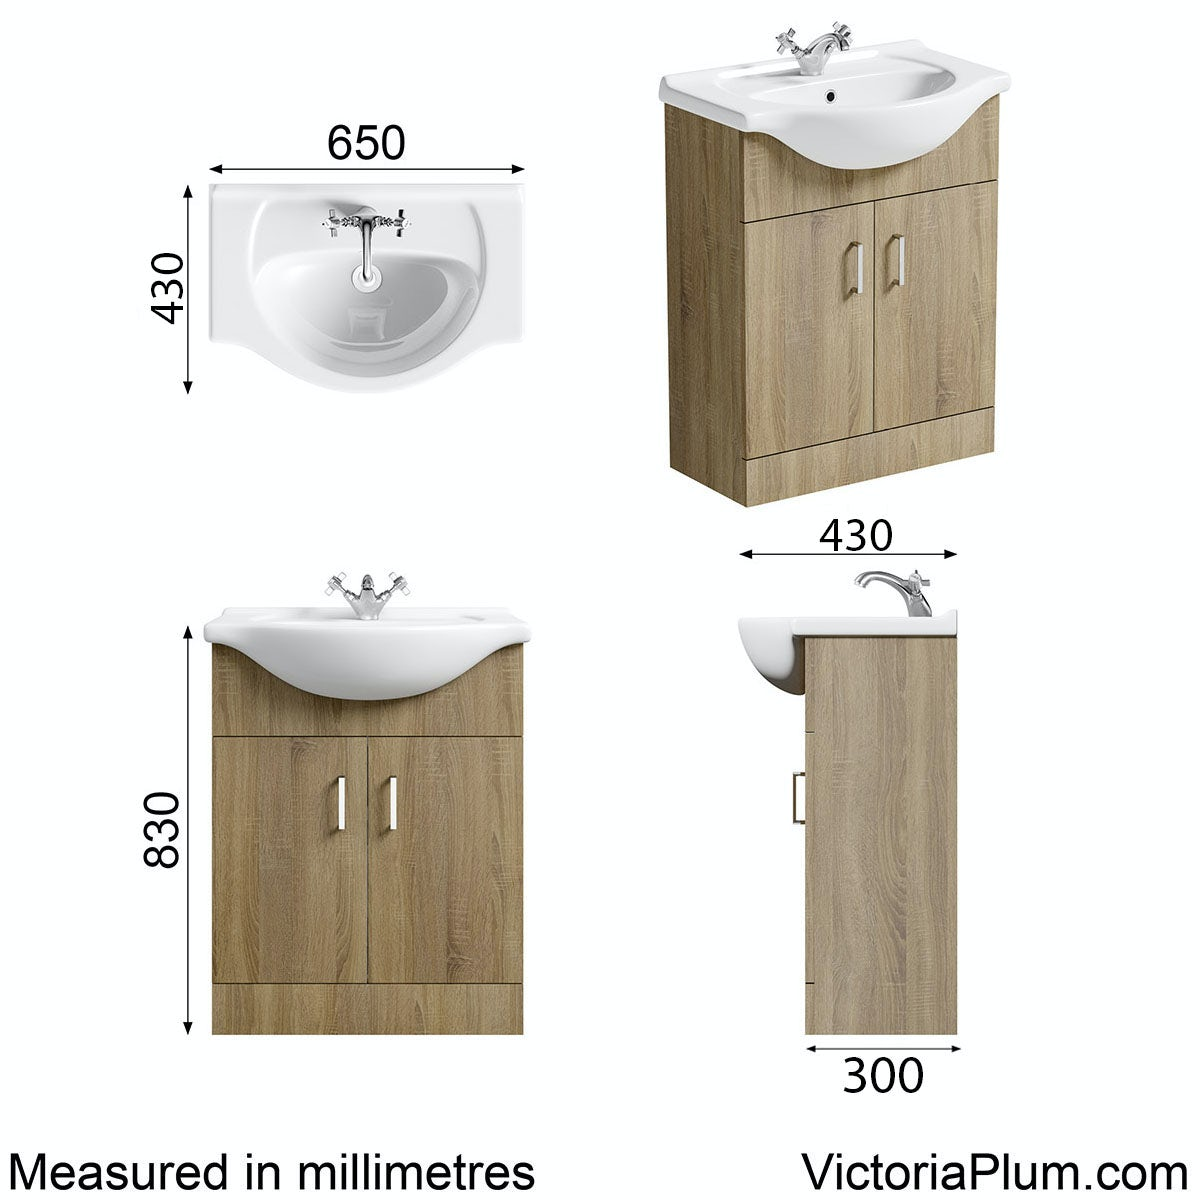 Dimensions for Orchard Eden oak vanity unit and basin 650mm